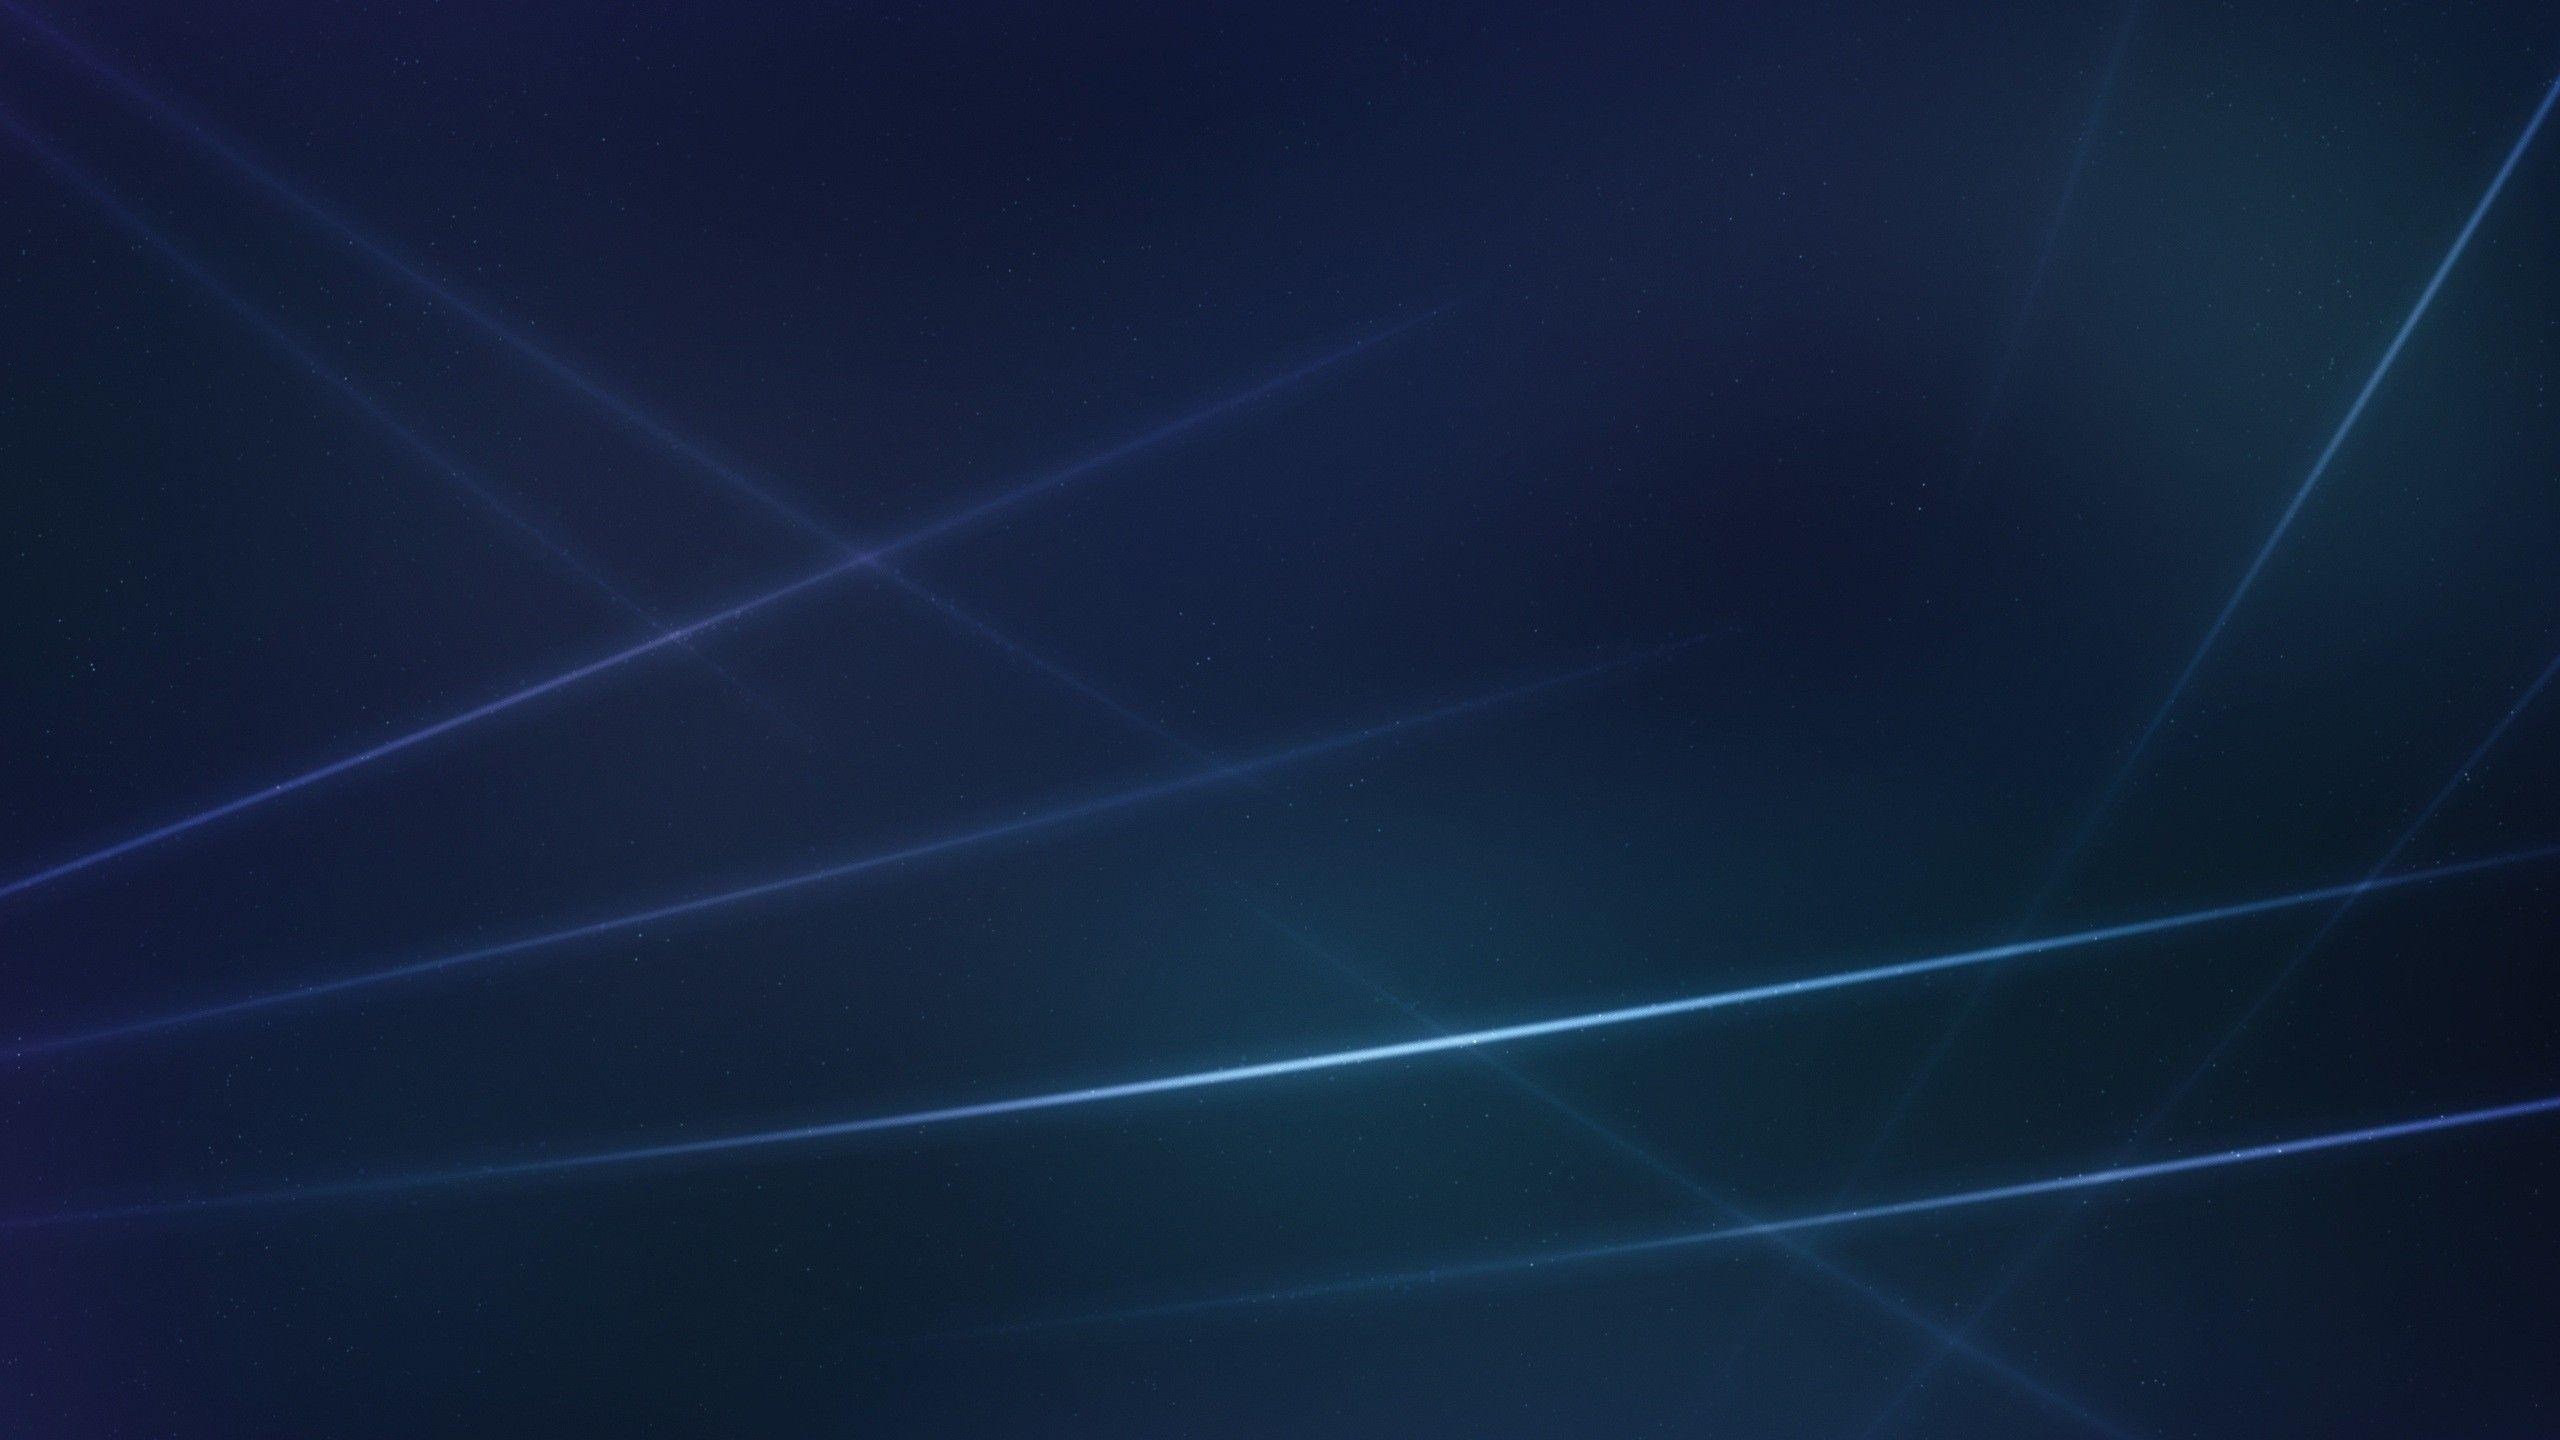 Light-Rays-Dark-Blue-Background-2560x1440 - SXNADesigns